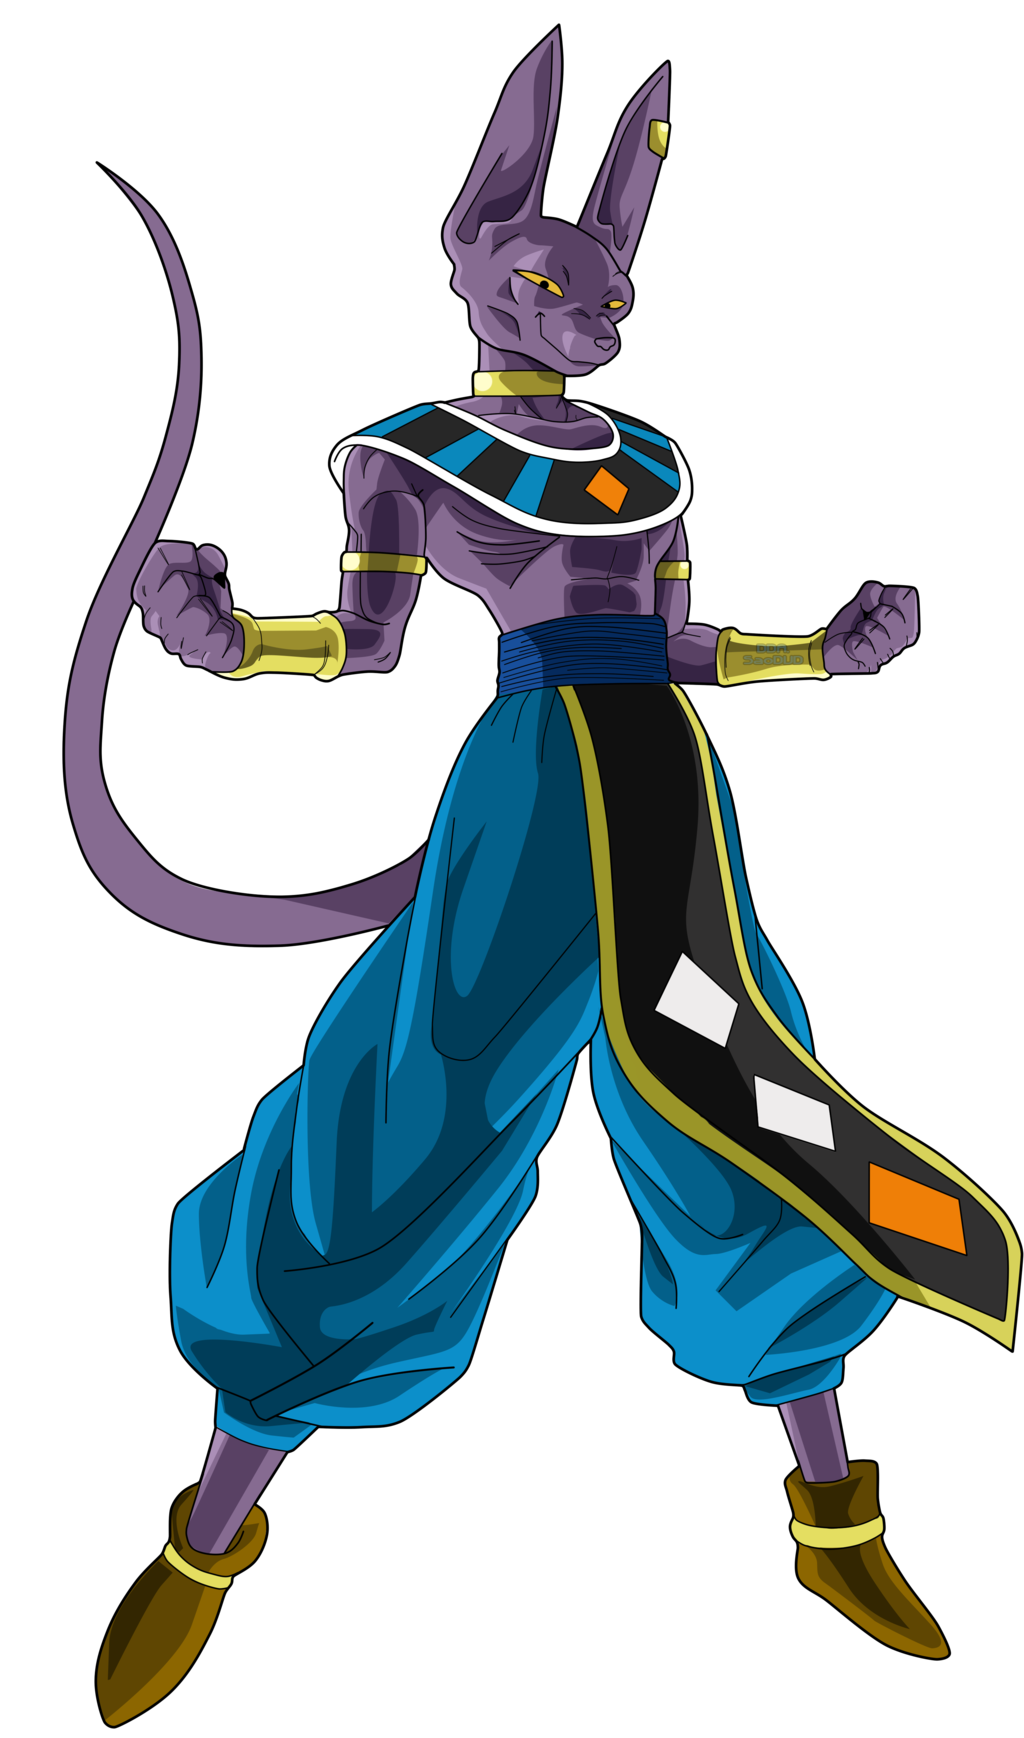 Beerus Dragon Ball Super Wikia Fandom Powered By Wikia